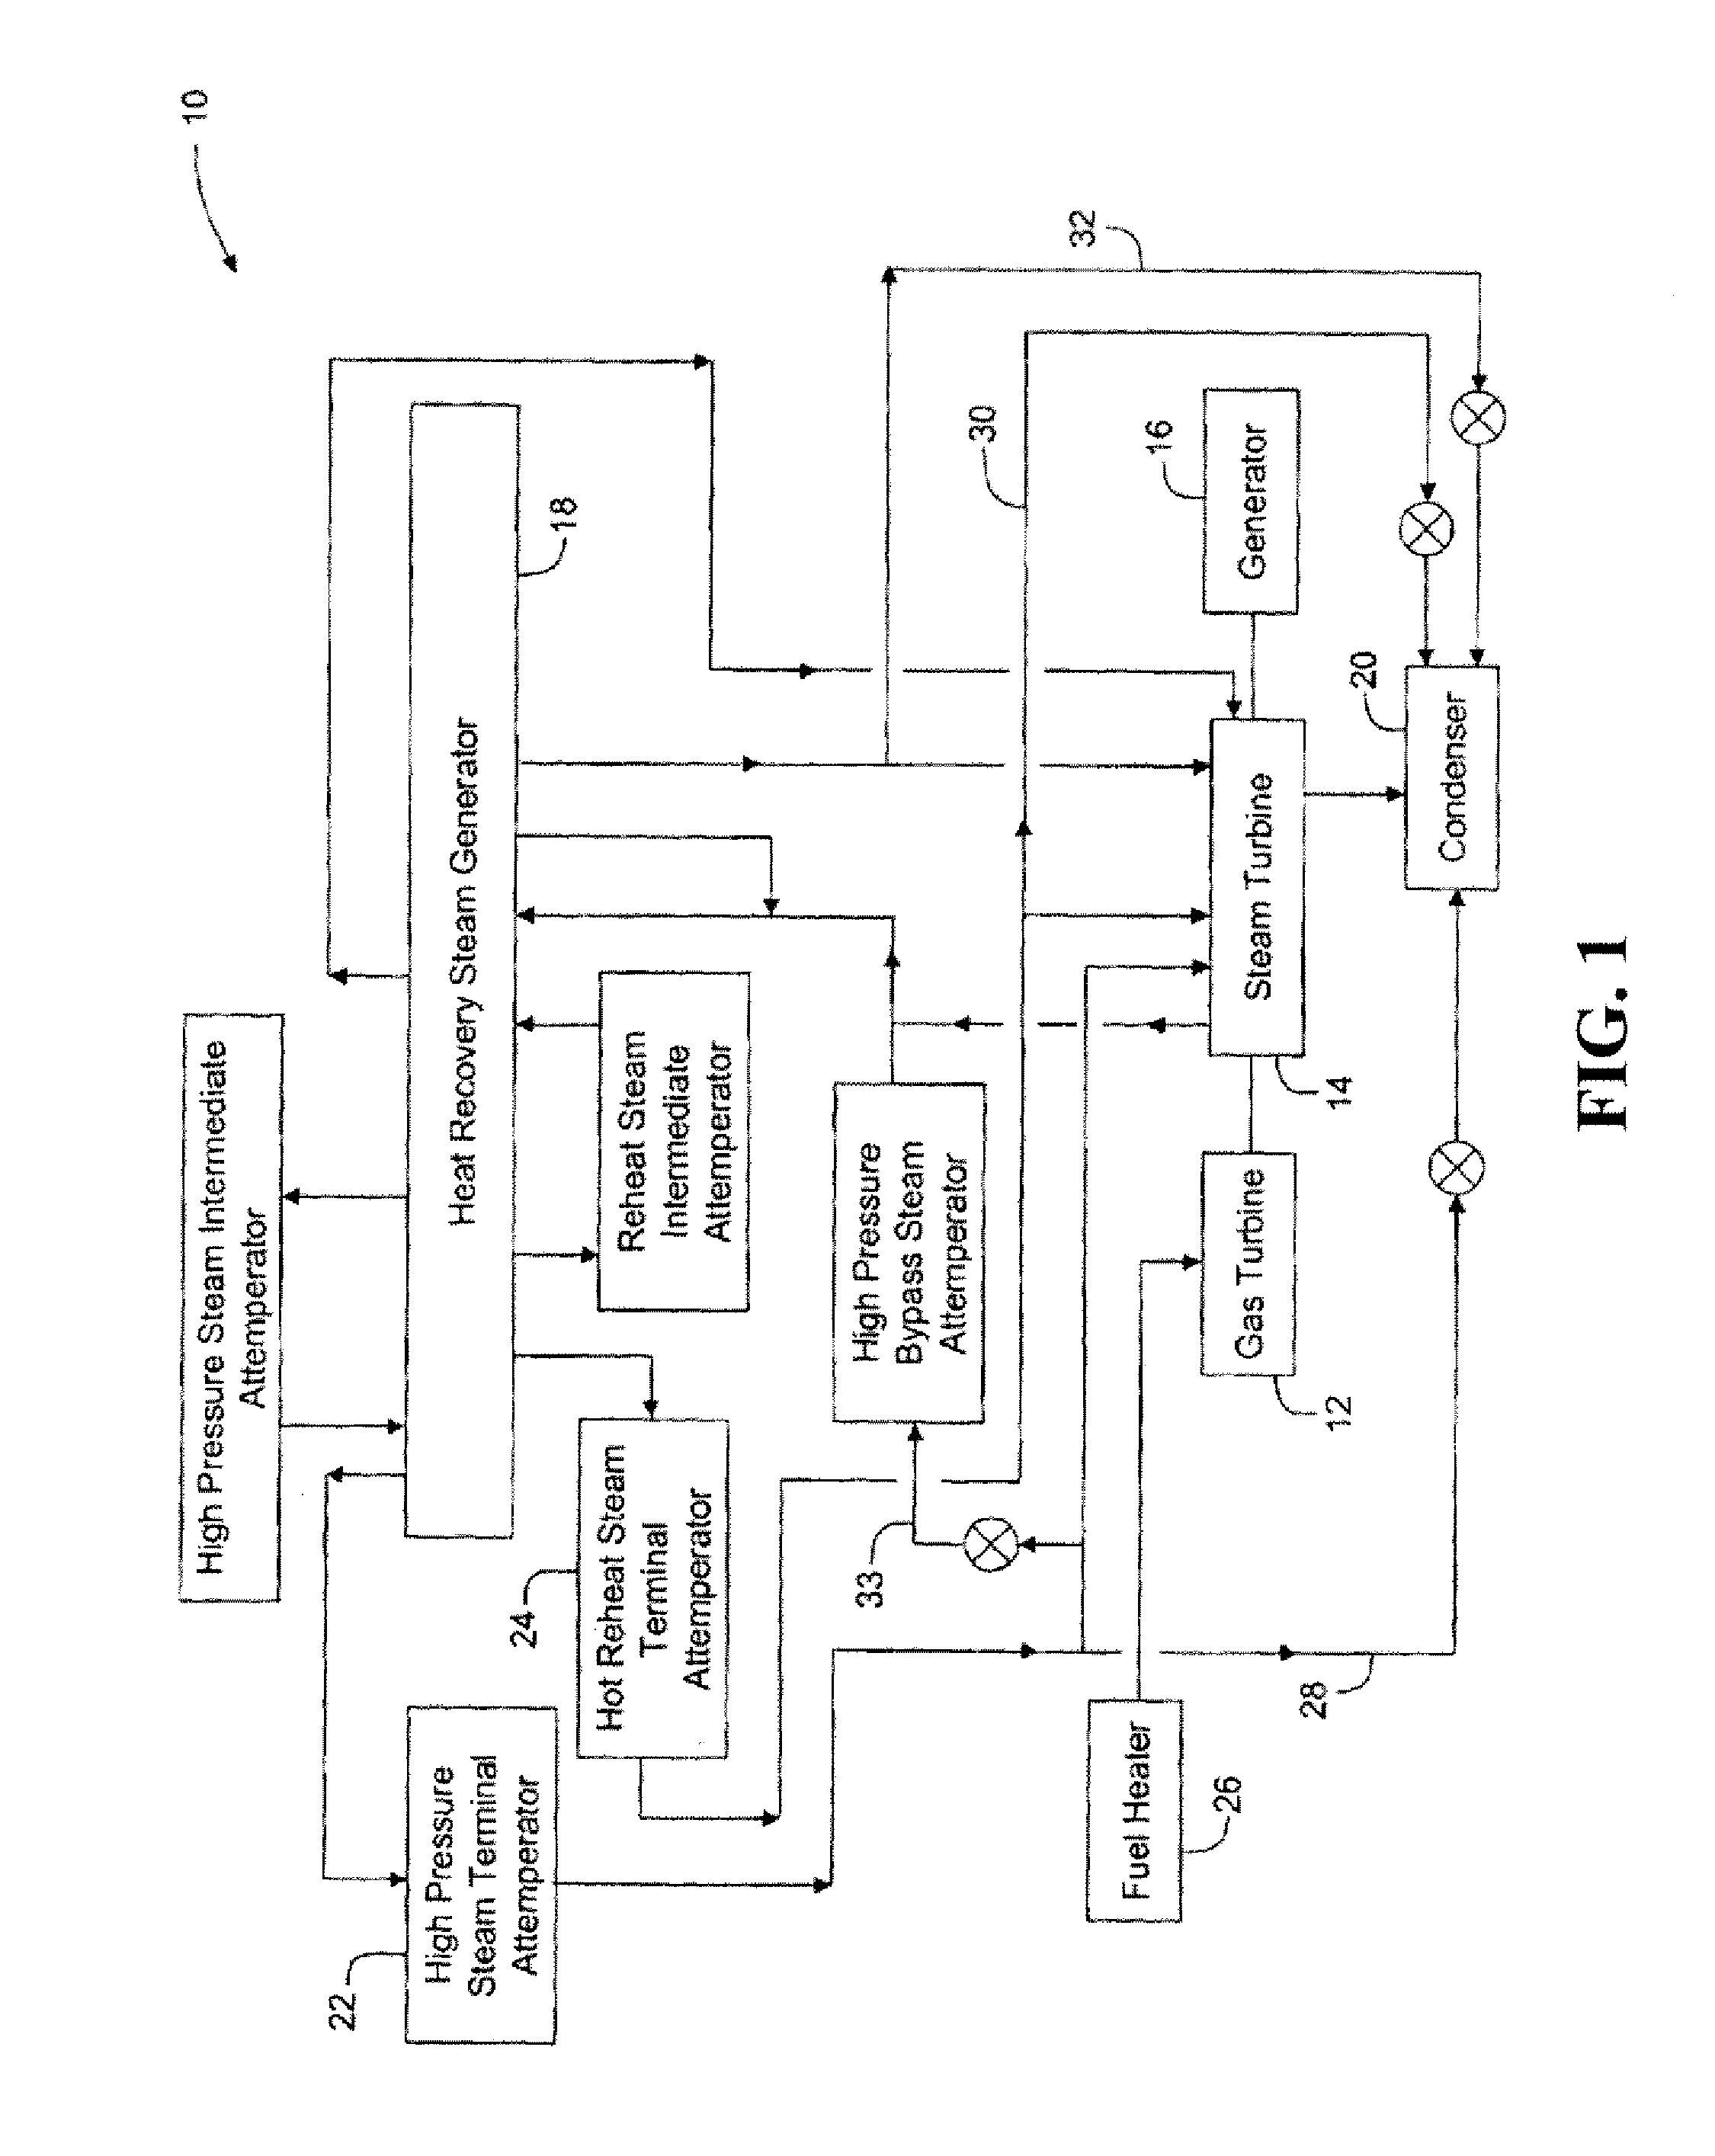 Patent US Methods and Systems for Loading a Steam